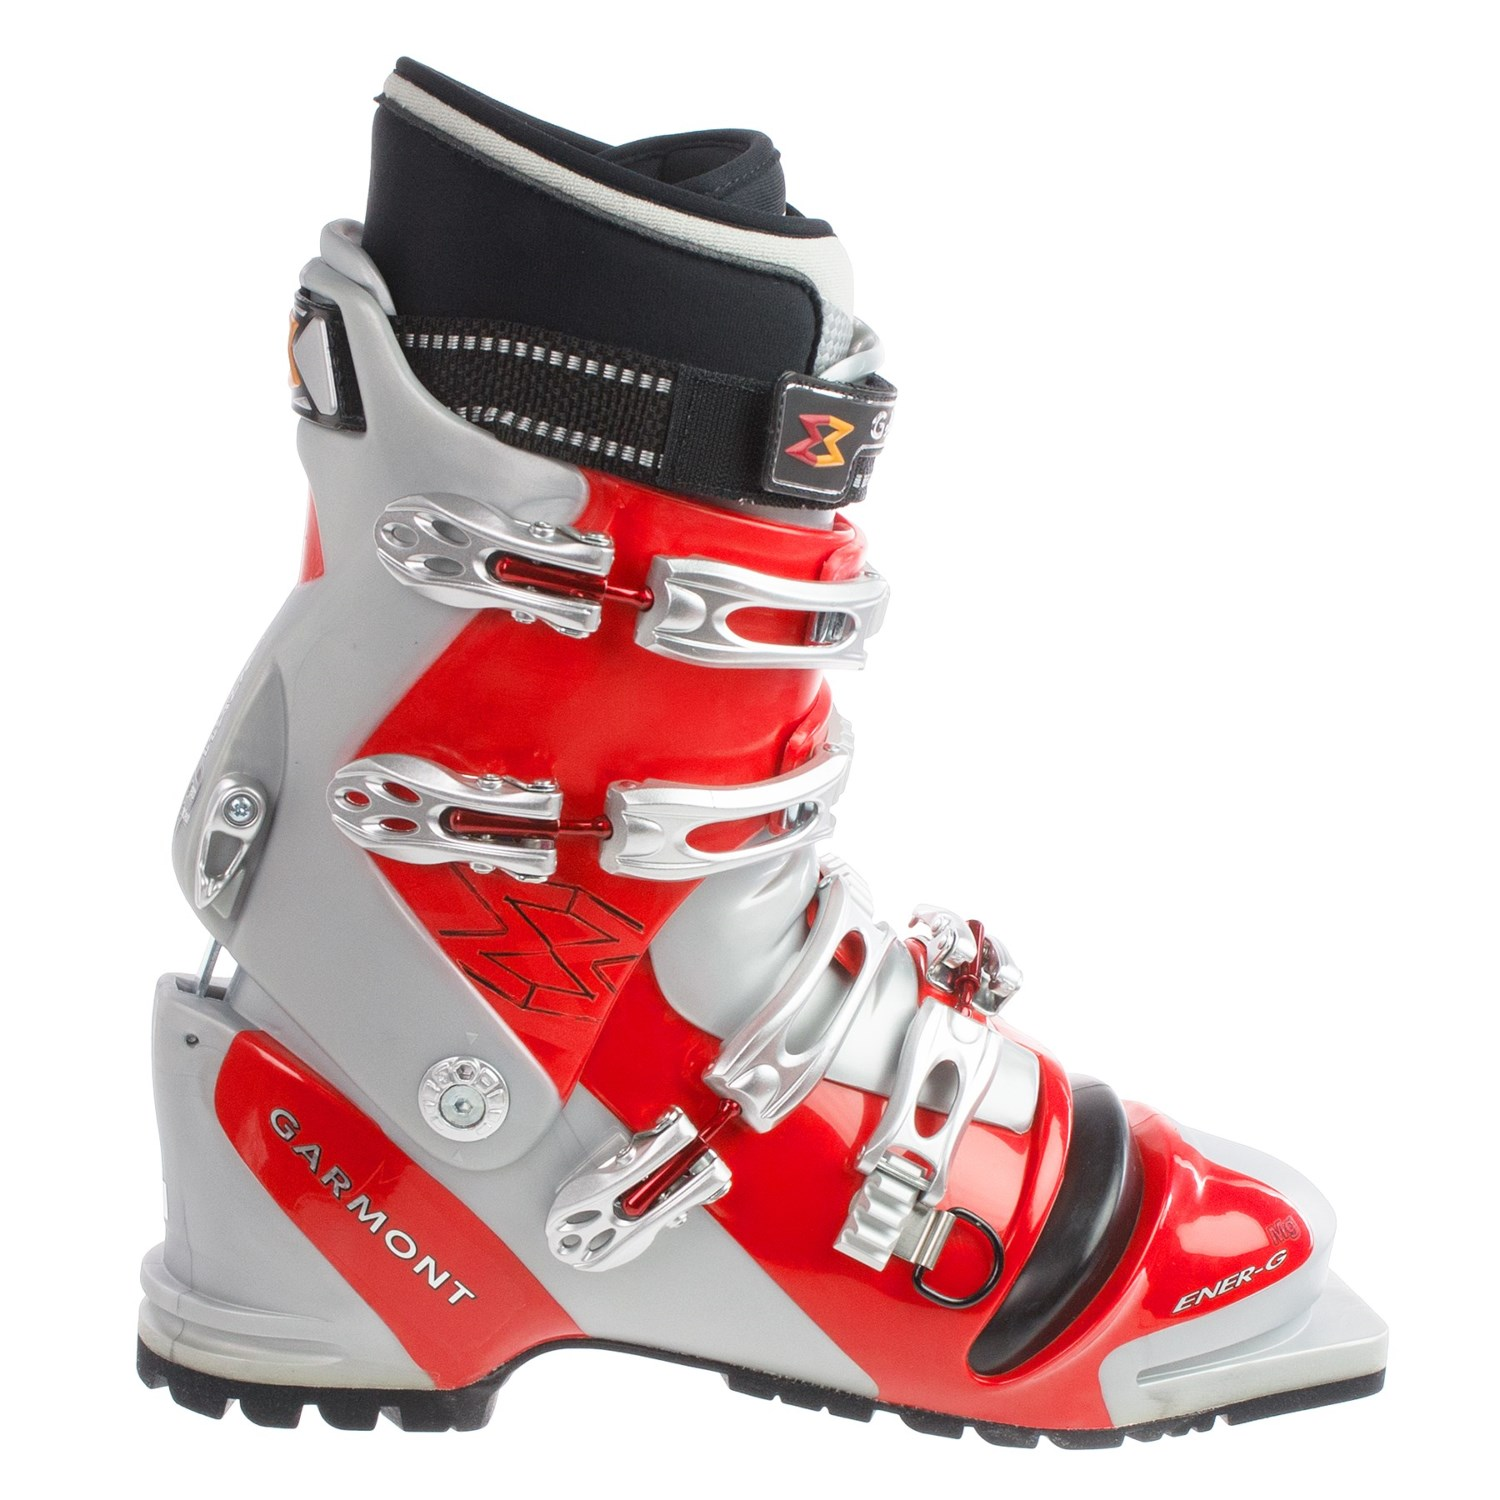 Garmont Ener-G Mg G-Fit Telemark Ski Boots (For Men) 9750W - Save 43%